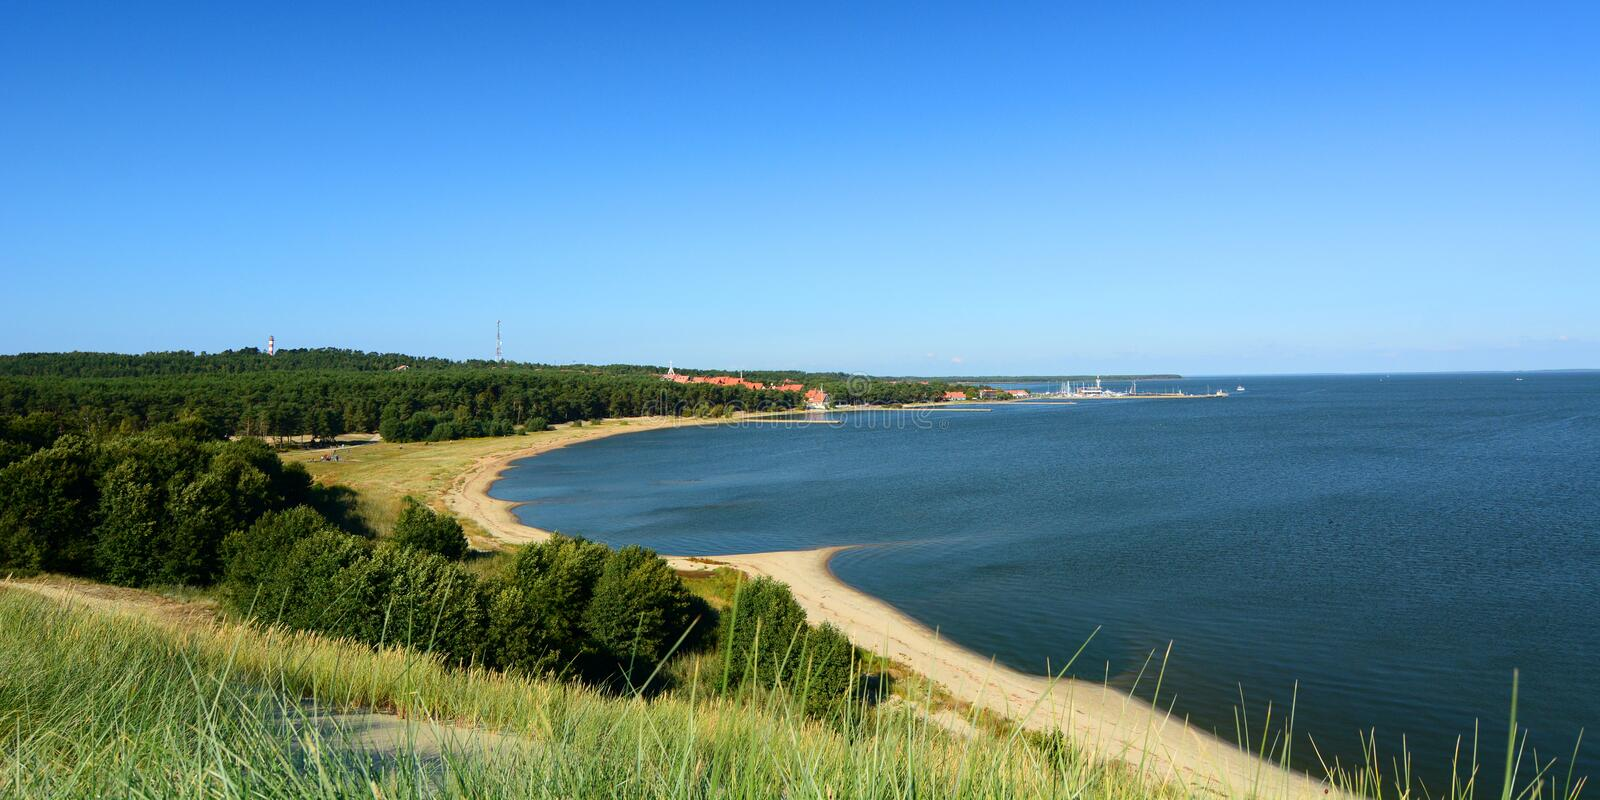 View from the Parnidis dune over Nida and the Curonian Lagoon. Nida. Lithuania. Nida is a resort town in Lithuania, located on the Curonian Spit between the stock photo